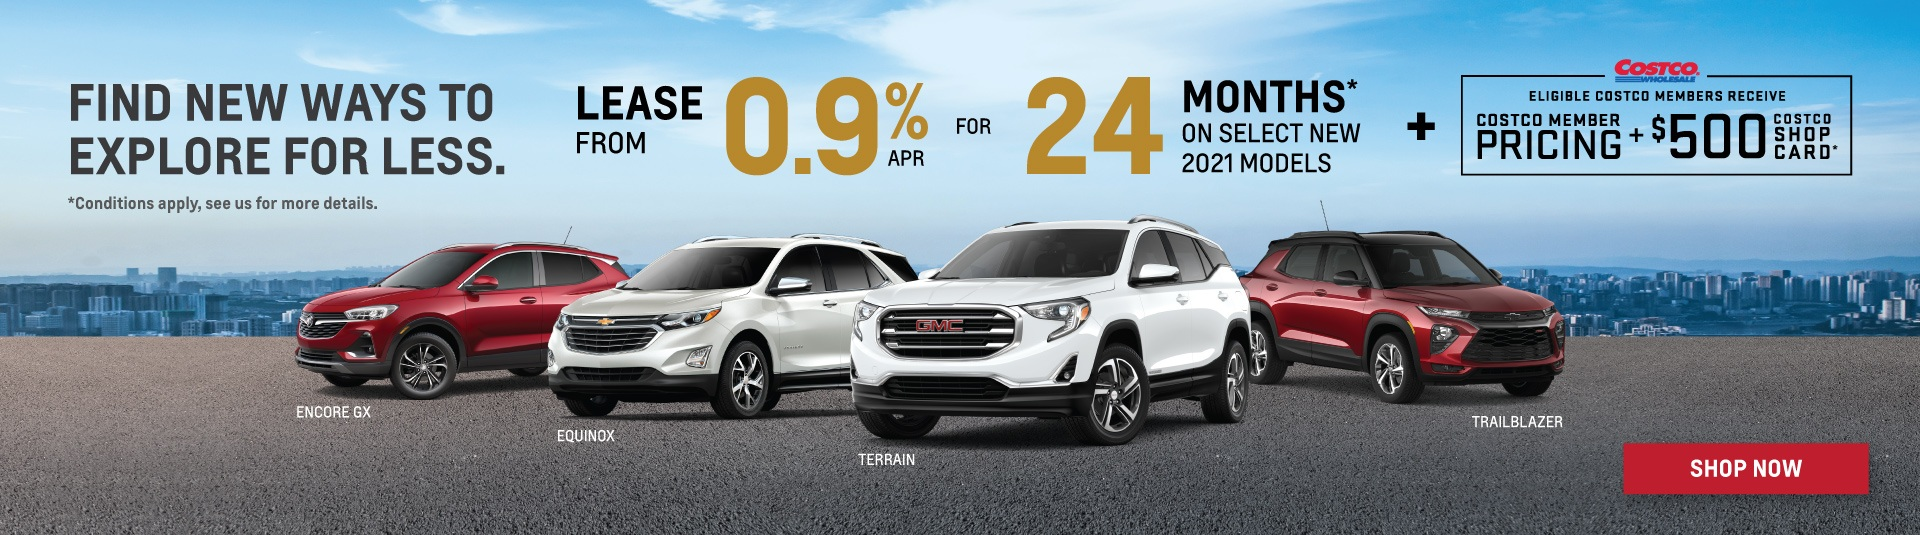 2021 Chevrolet, Buick and GMC SUV Offers in Toronto